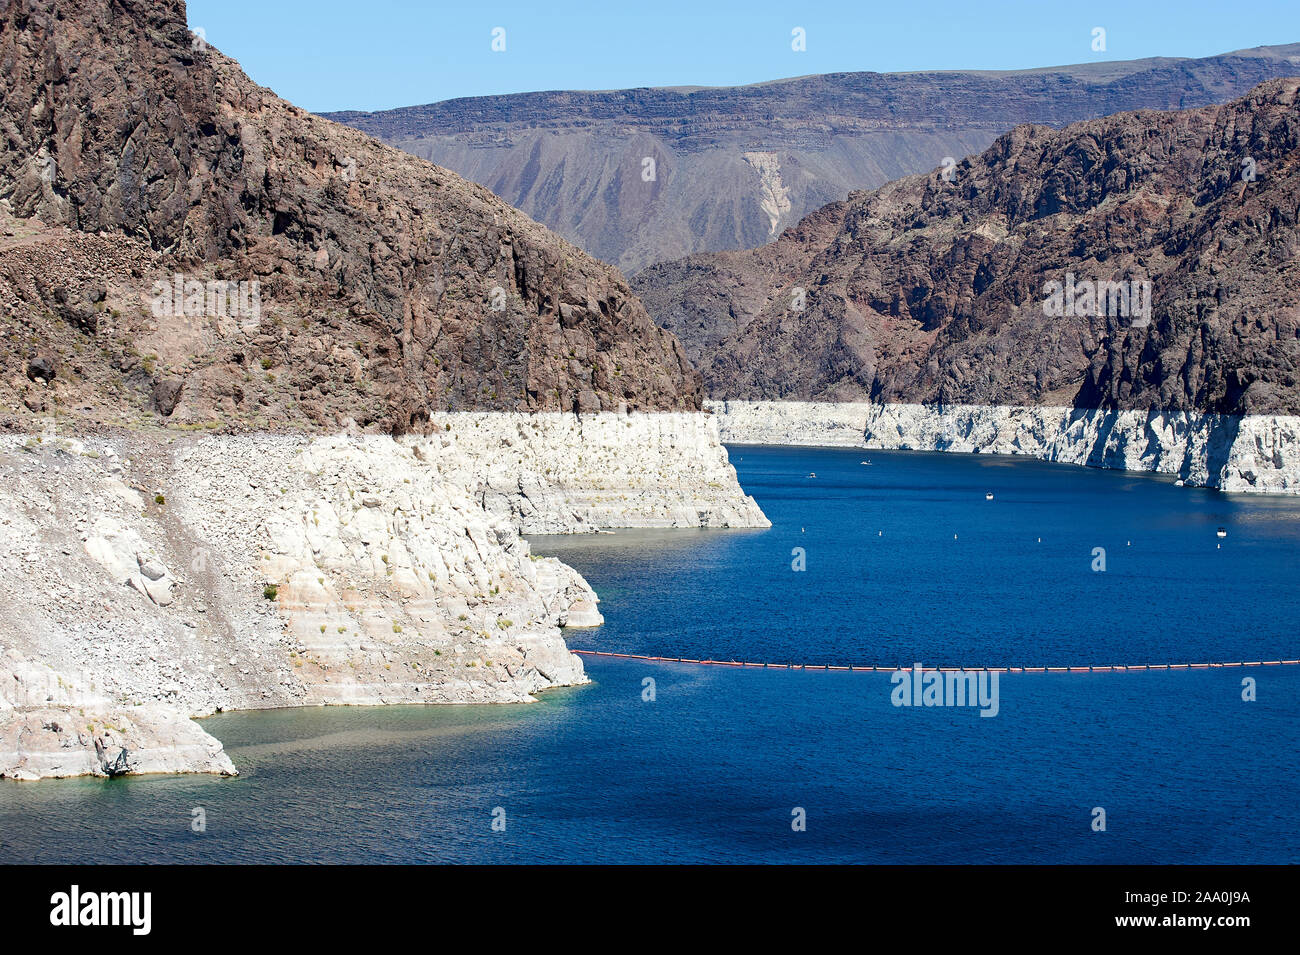 Shot up lake Mead showing the very low water levels and previous level - , Hoover Dam , Nevada, USA Stock Photo